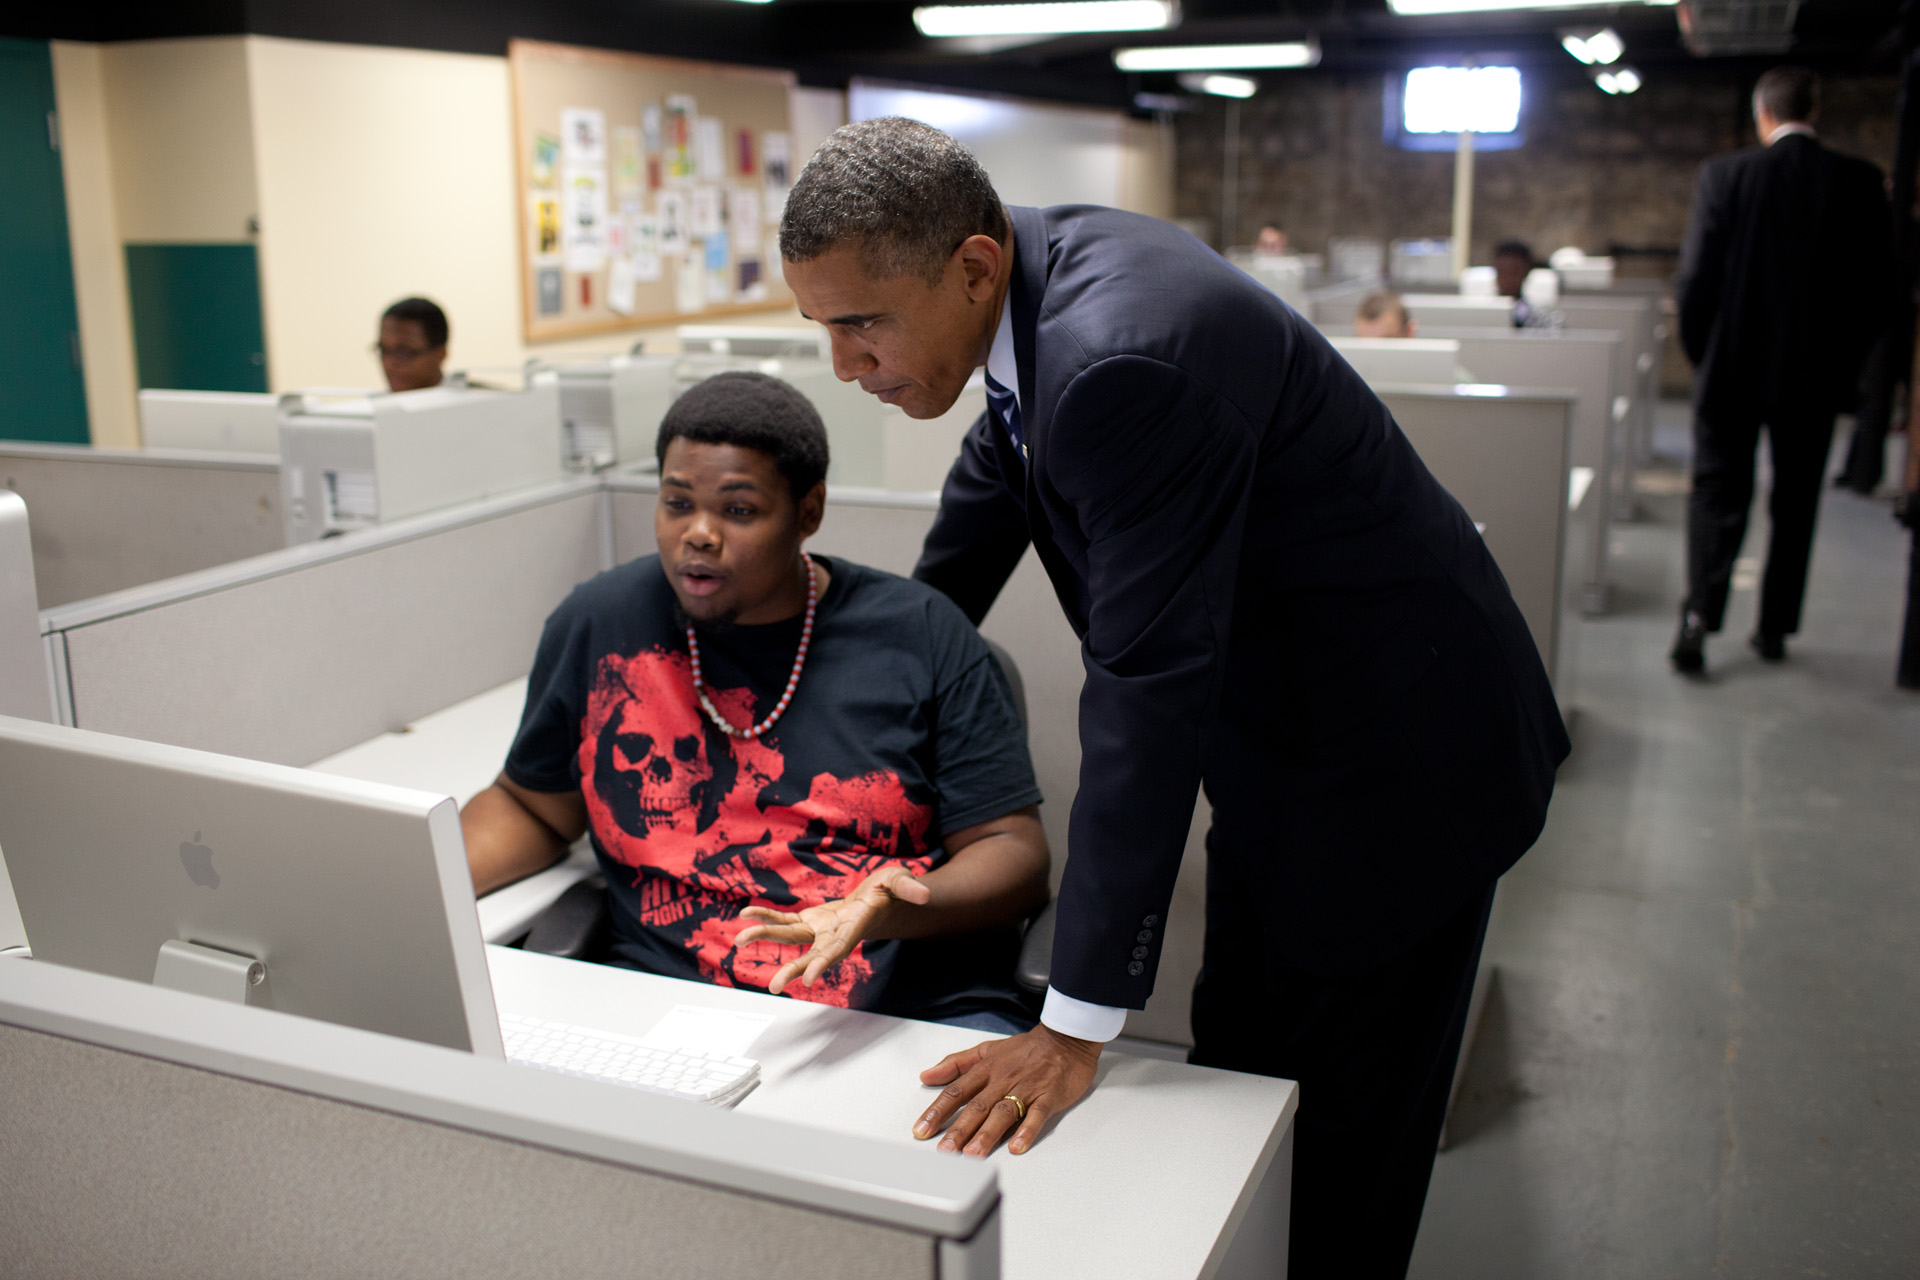 President Obama with a Student in Columbus, Ohio